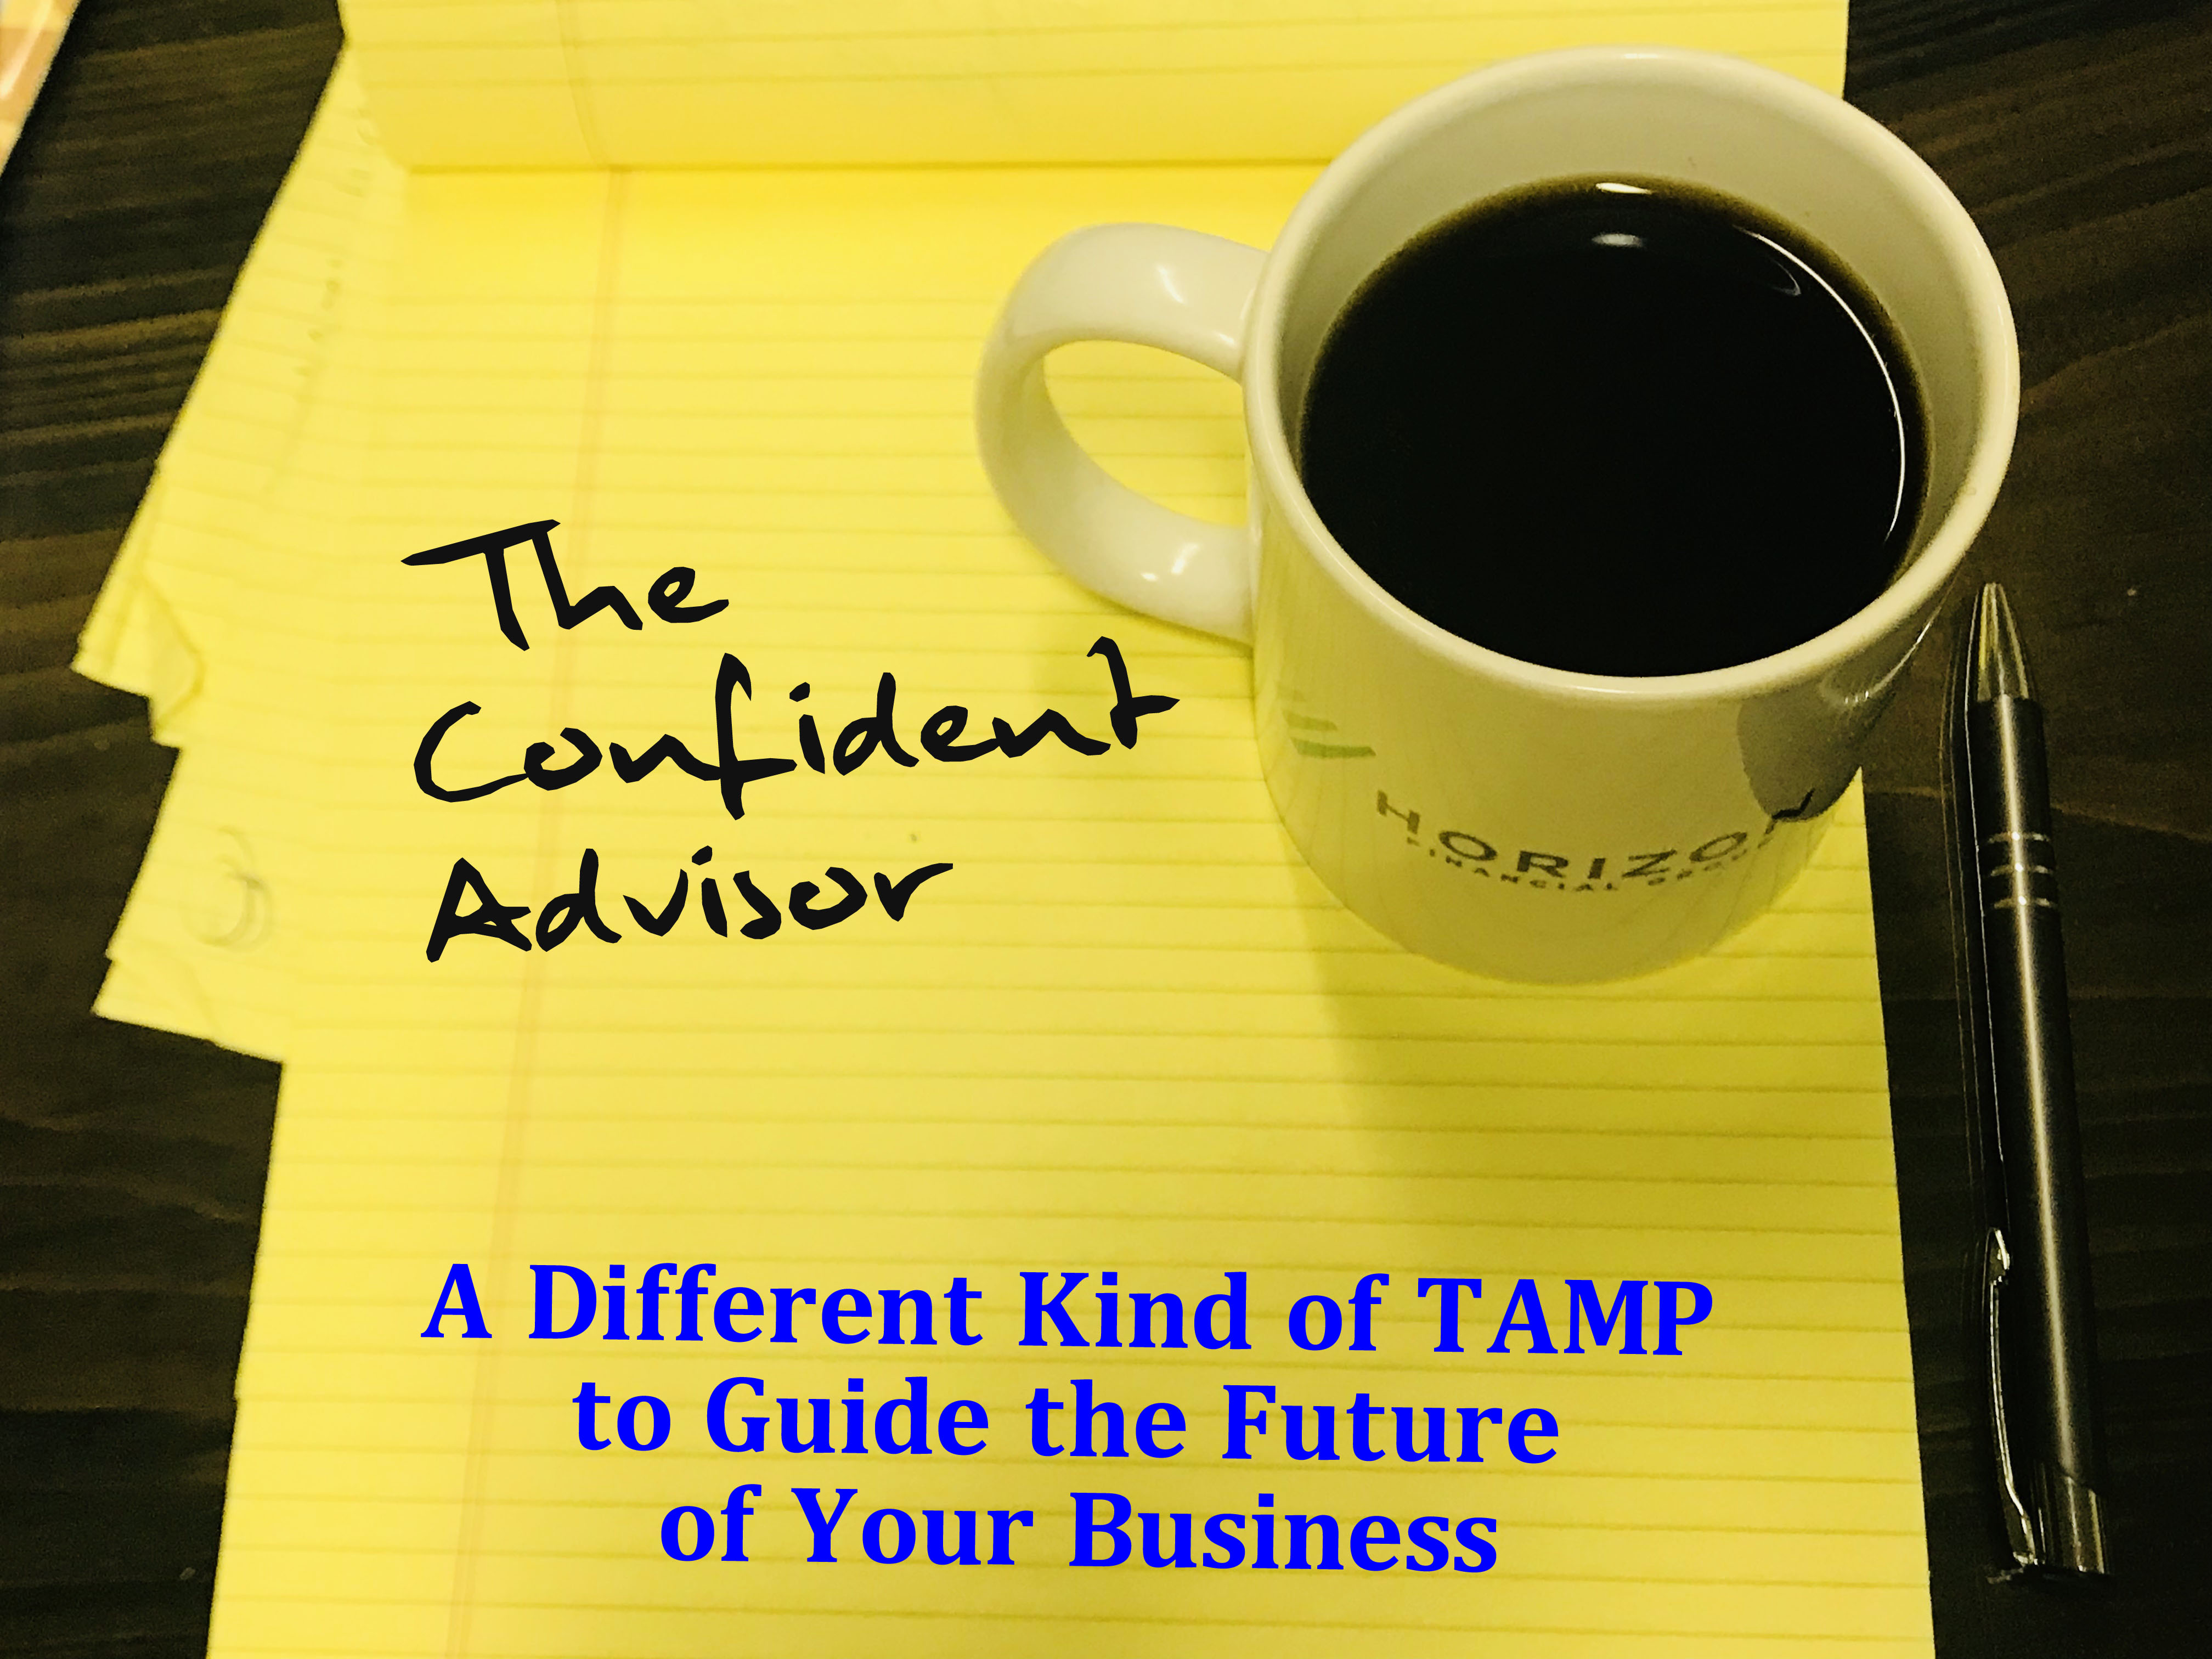 A Different Kind of TAMP to Guide the Future of Your Business